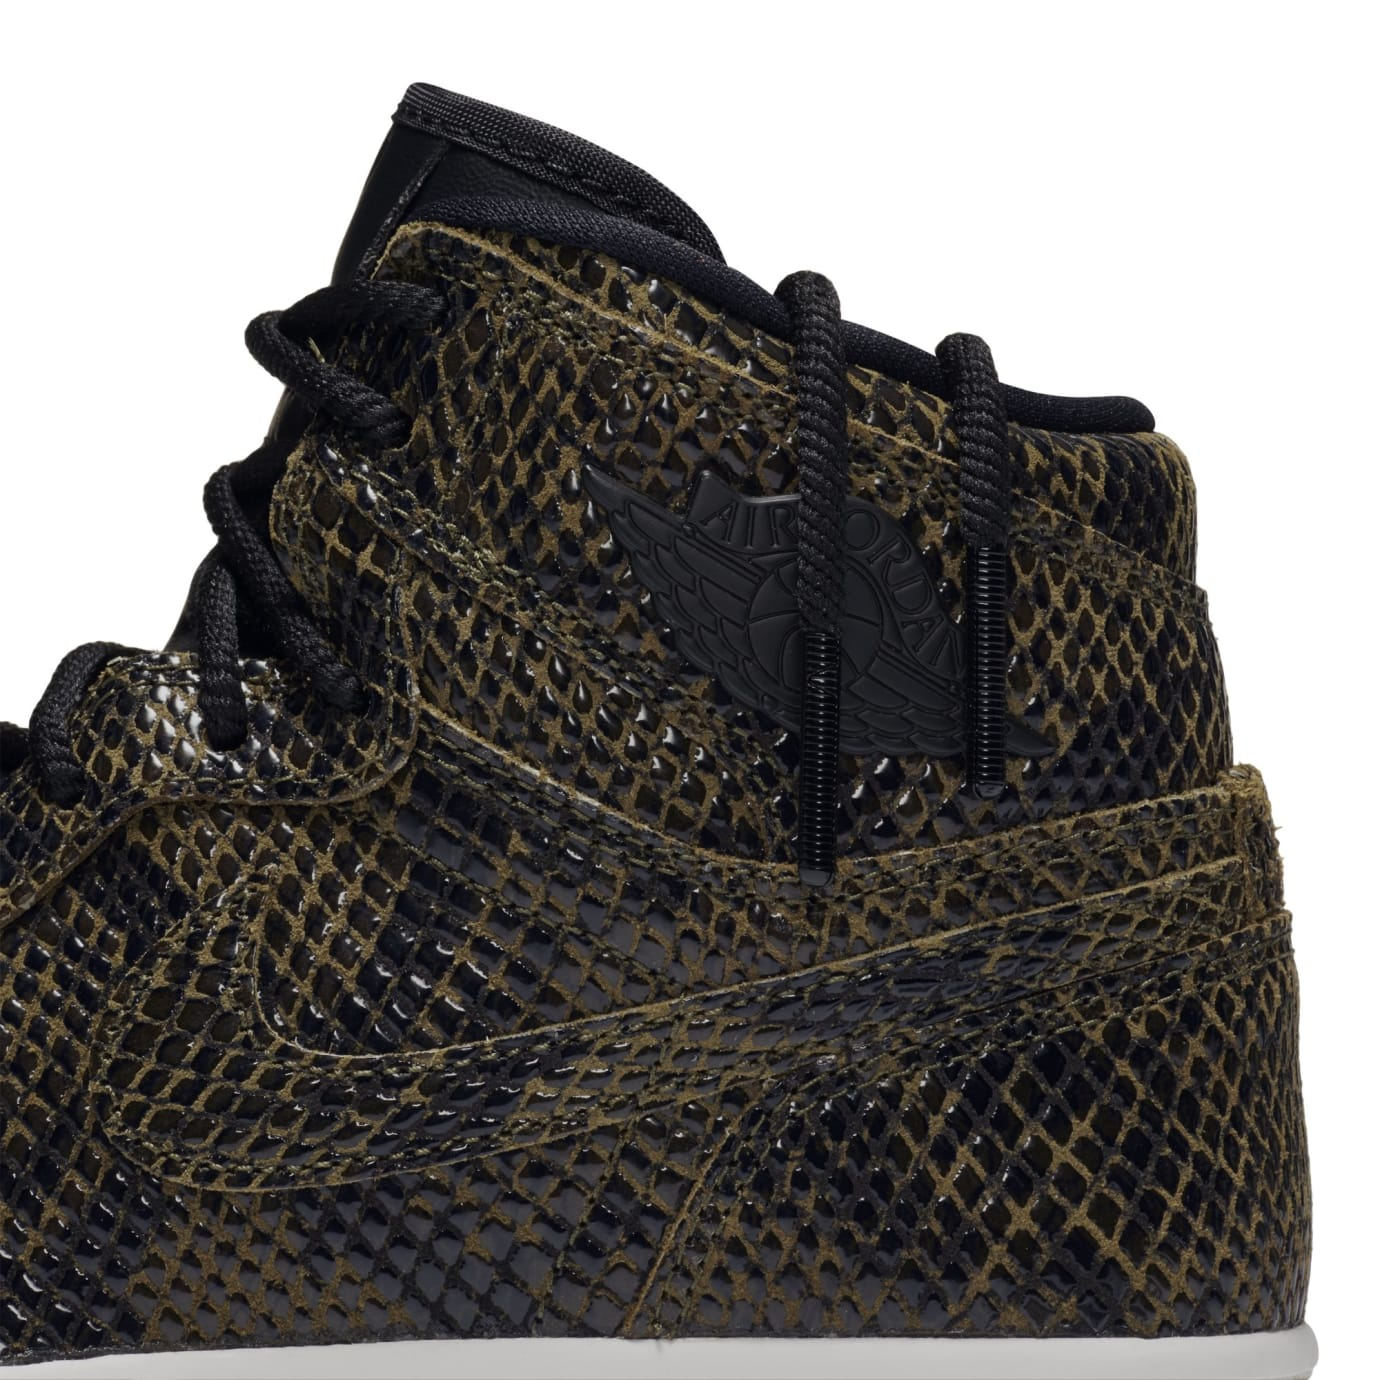 Air Jordan 1 Retro High Premium Women's Snake 'Olive Canvas' AH7389-302 (Detail)